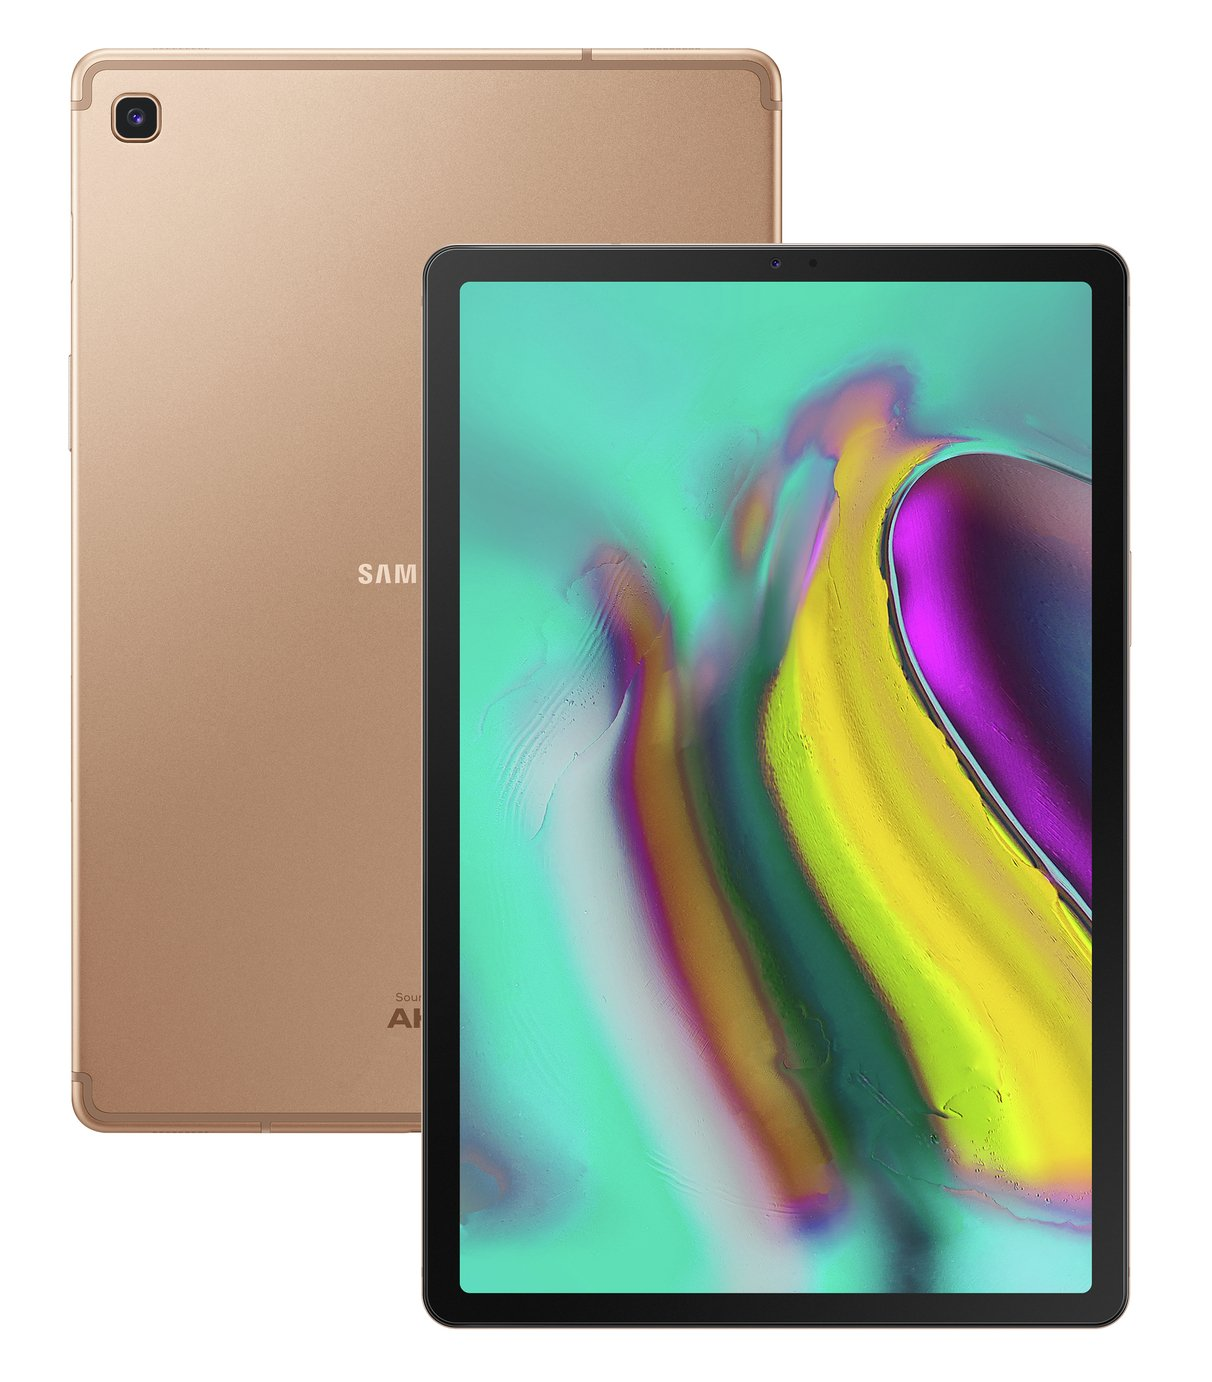 Samsung Tab S5e 10.5 Inch 64GB Wi-Fi Tablet - Gold